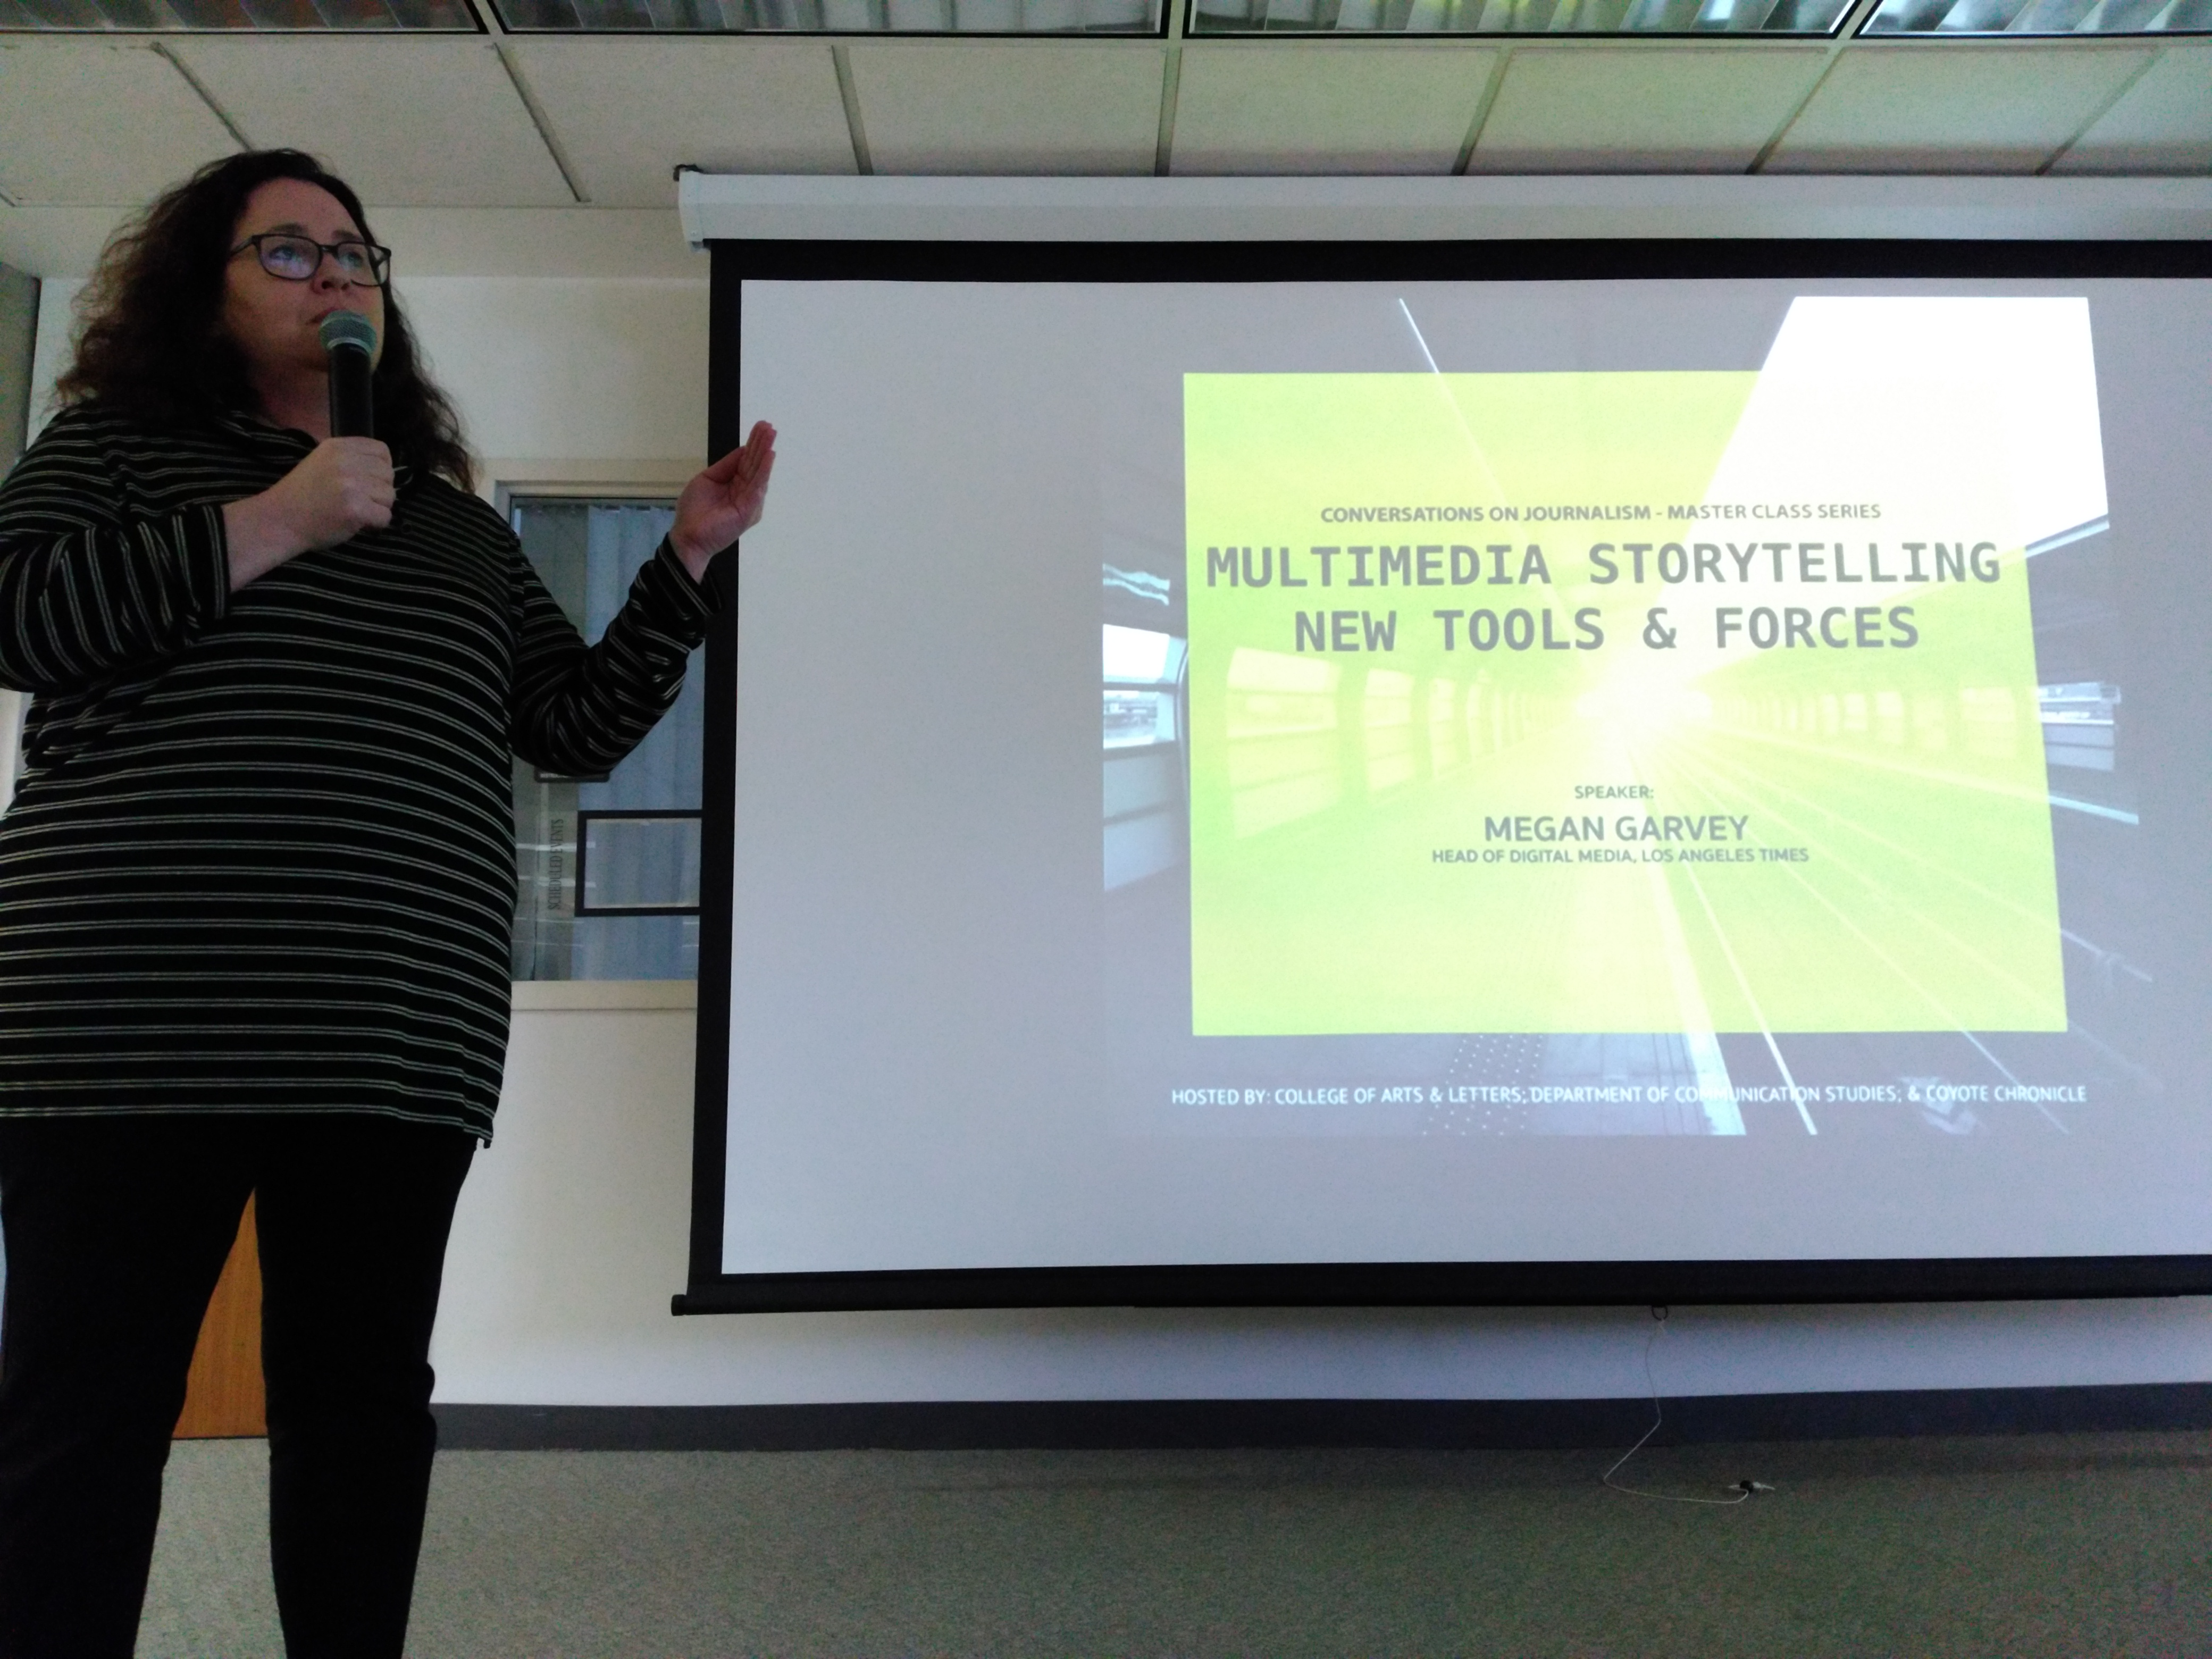 Digital storytelling in contemporary journalism